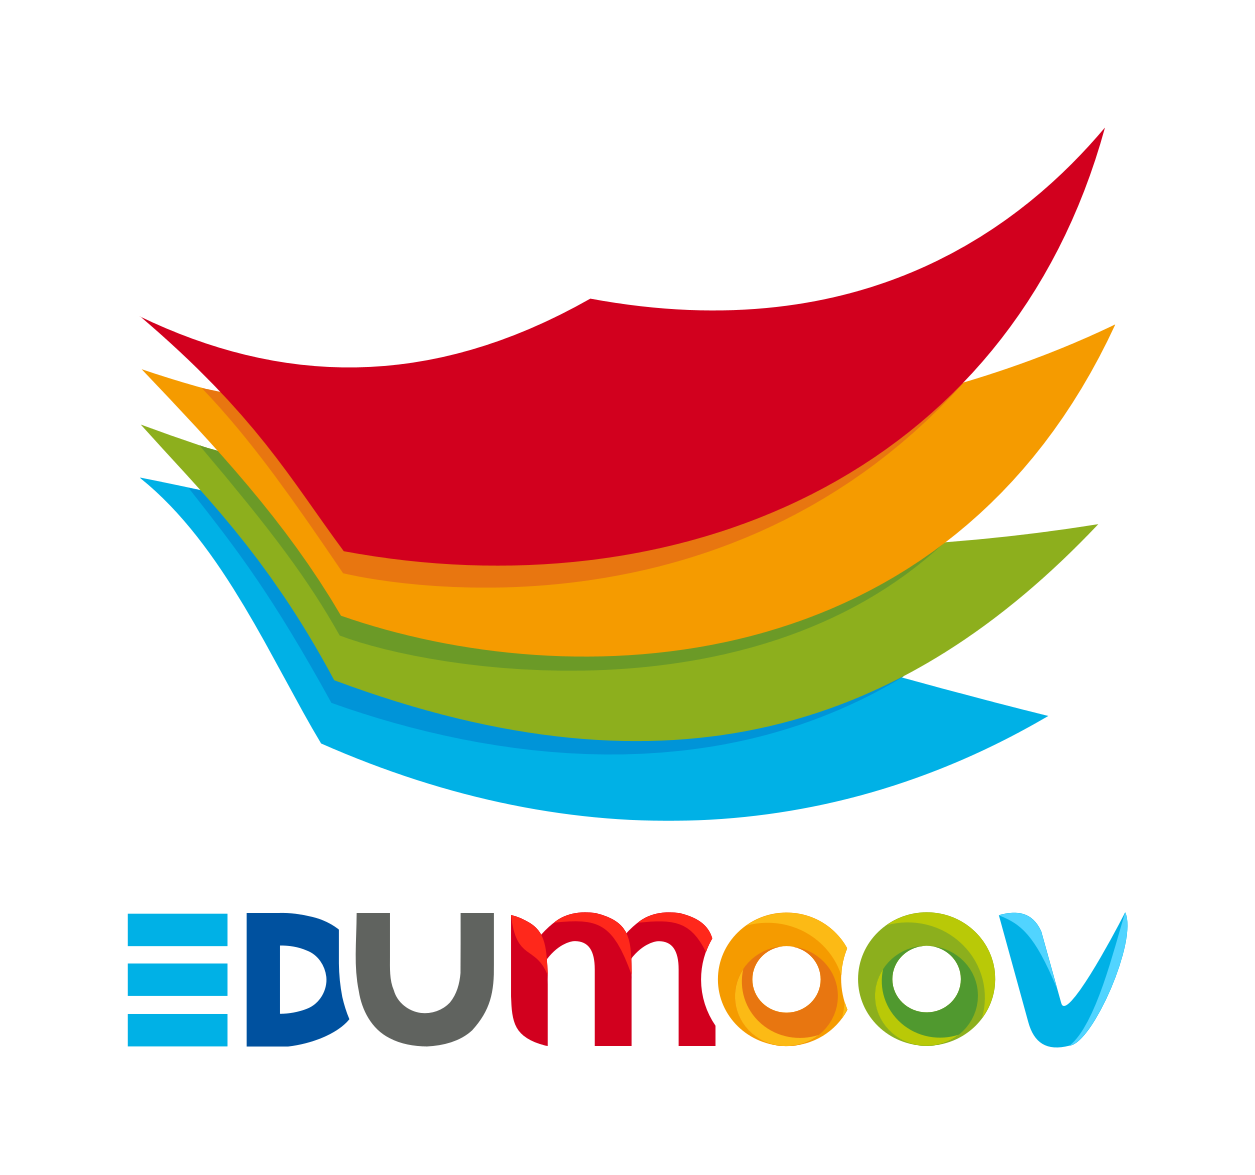 https://one.opendigitaleducation.com/wp-content/uploads/2019/11/edumoov.png